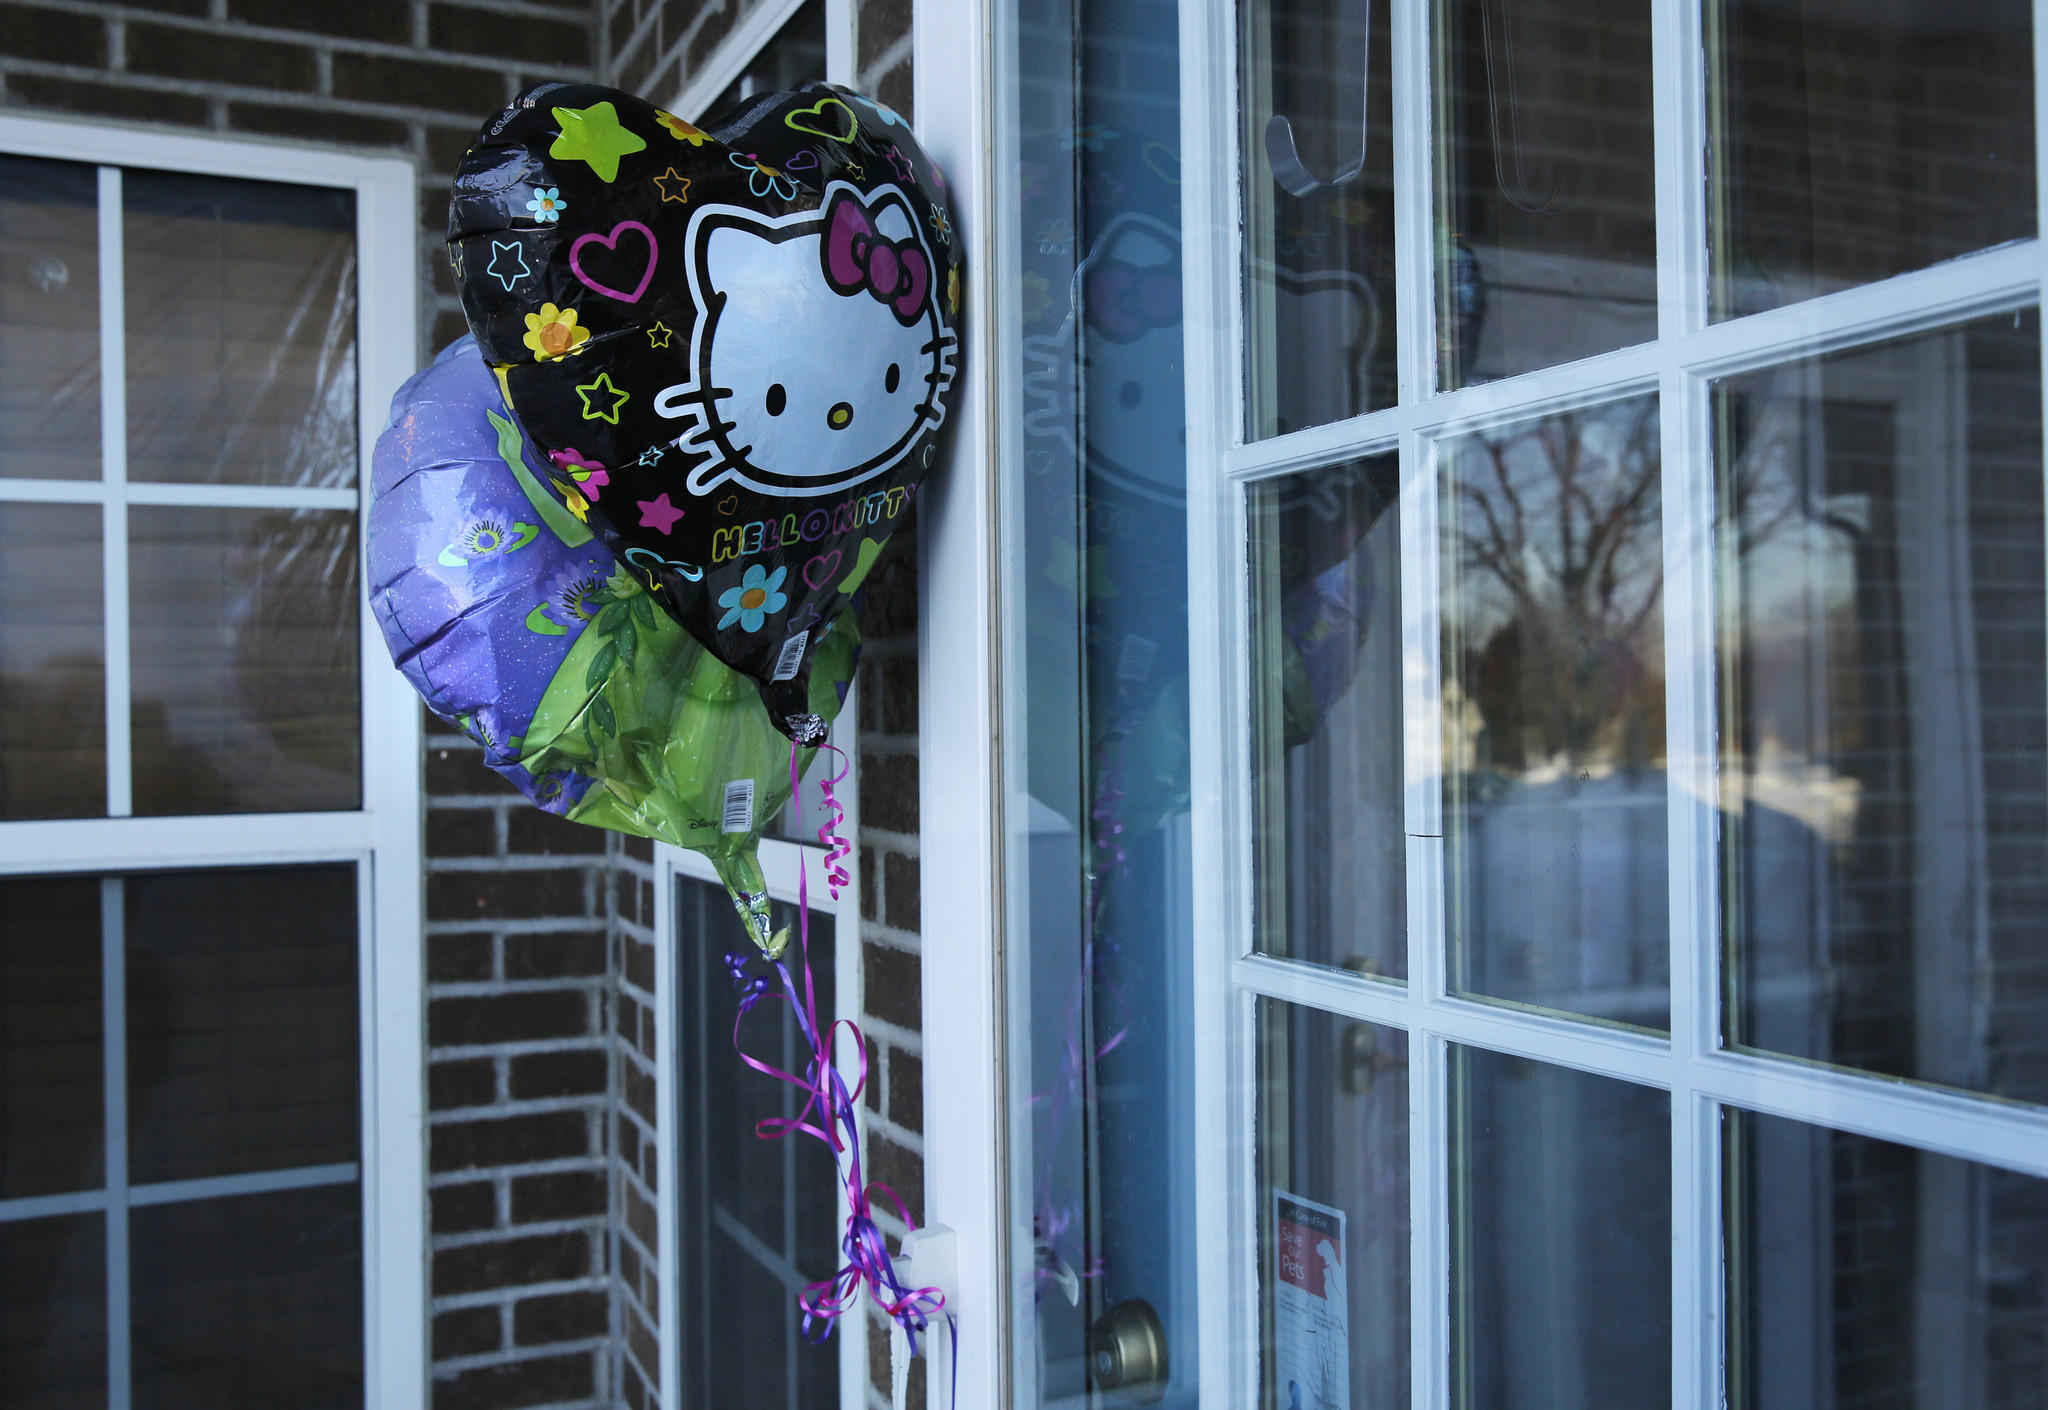 Balloons left by a well-wisher adorn the entrance to the Mundelein home where an 11-year-old girl was stabbed to death.